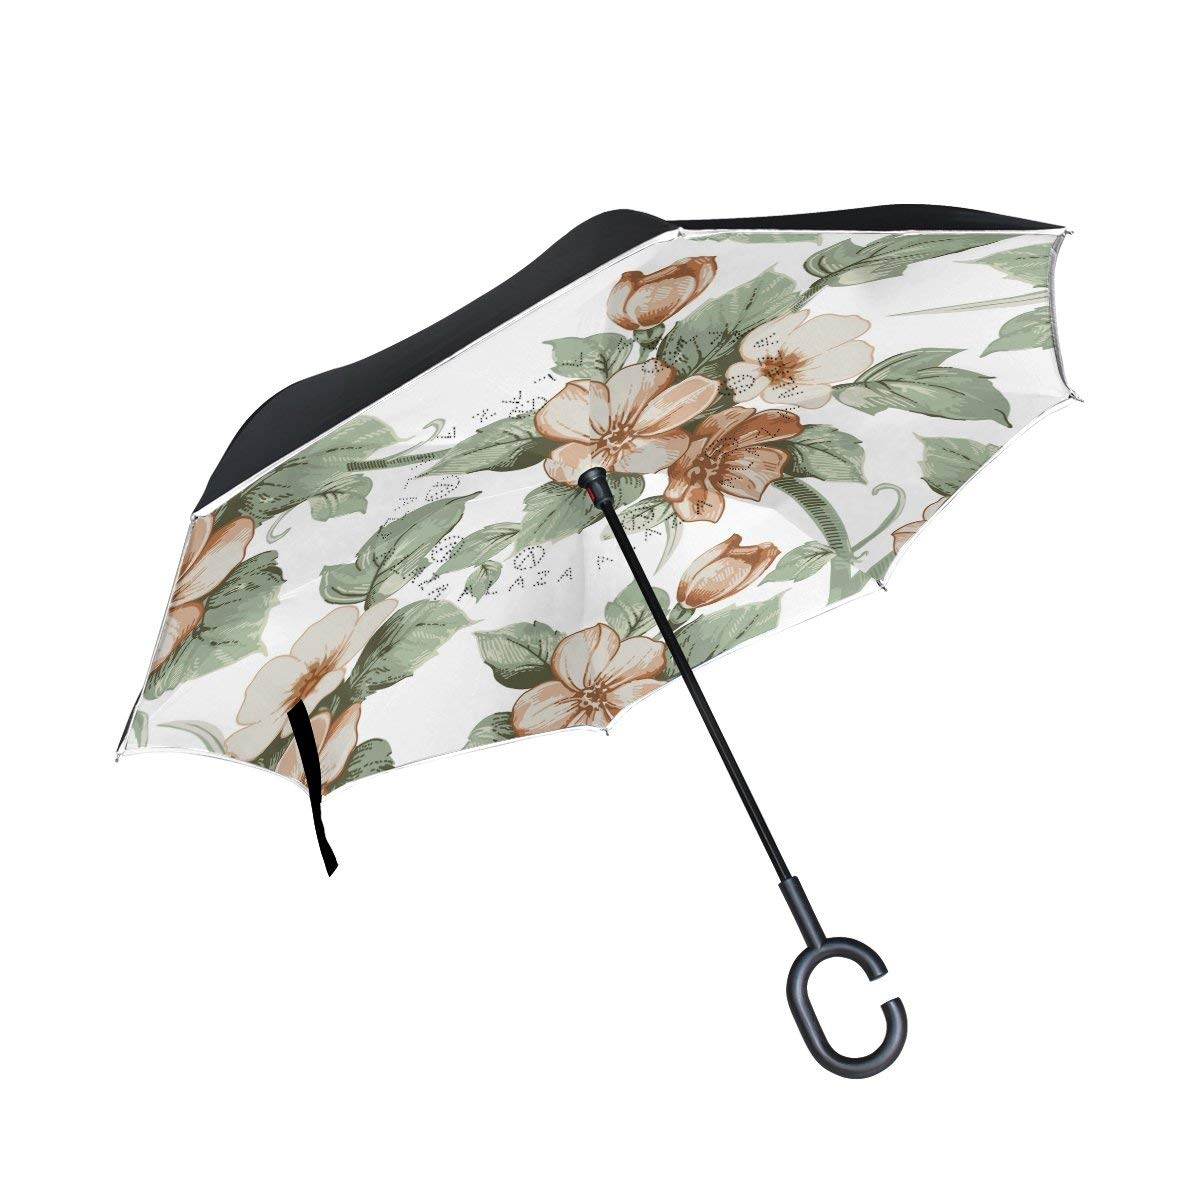 eb952d94a9ed Cheap Vintage Style Umbrellas, find Vintage Style Umbrellas deals on ...